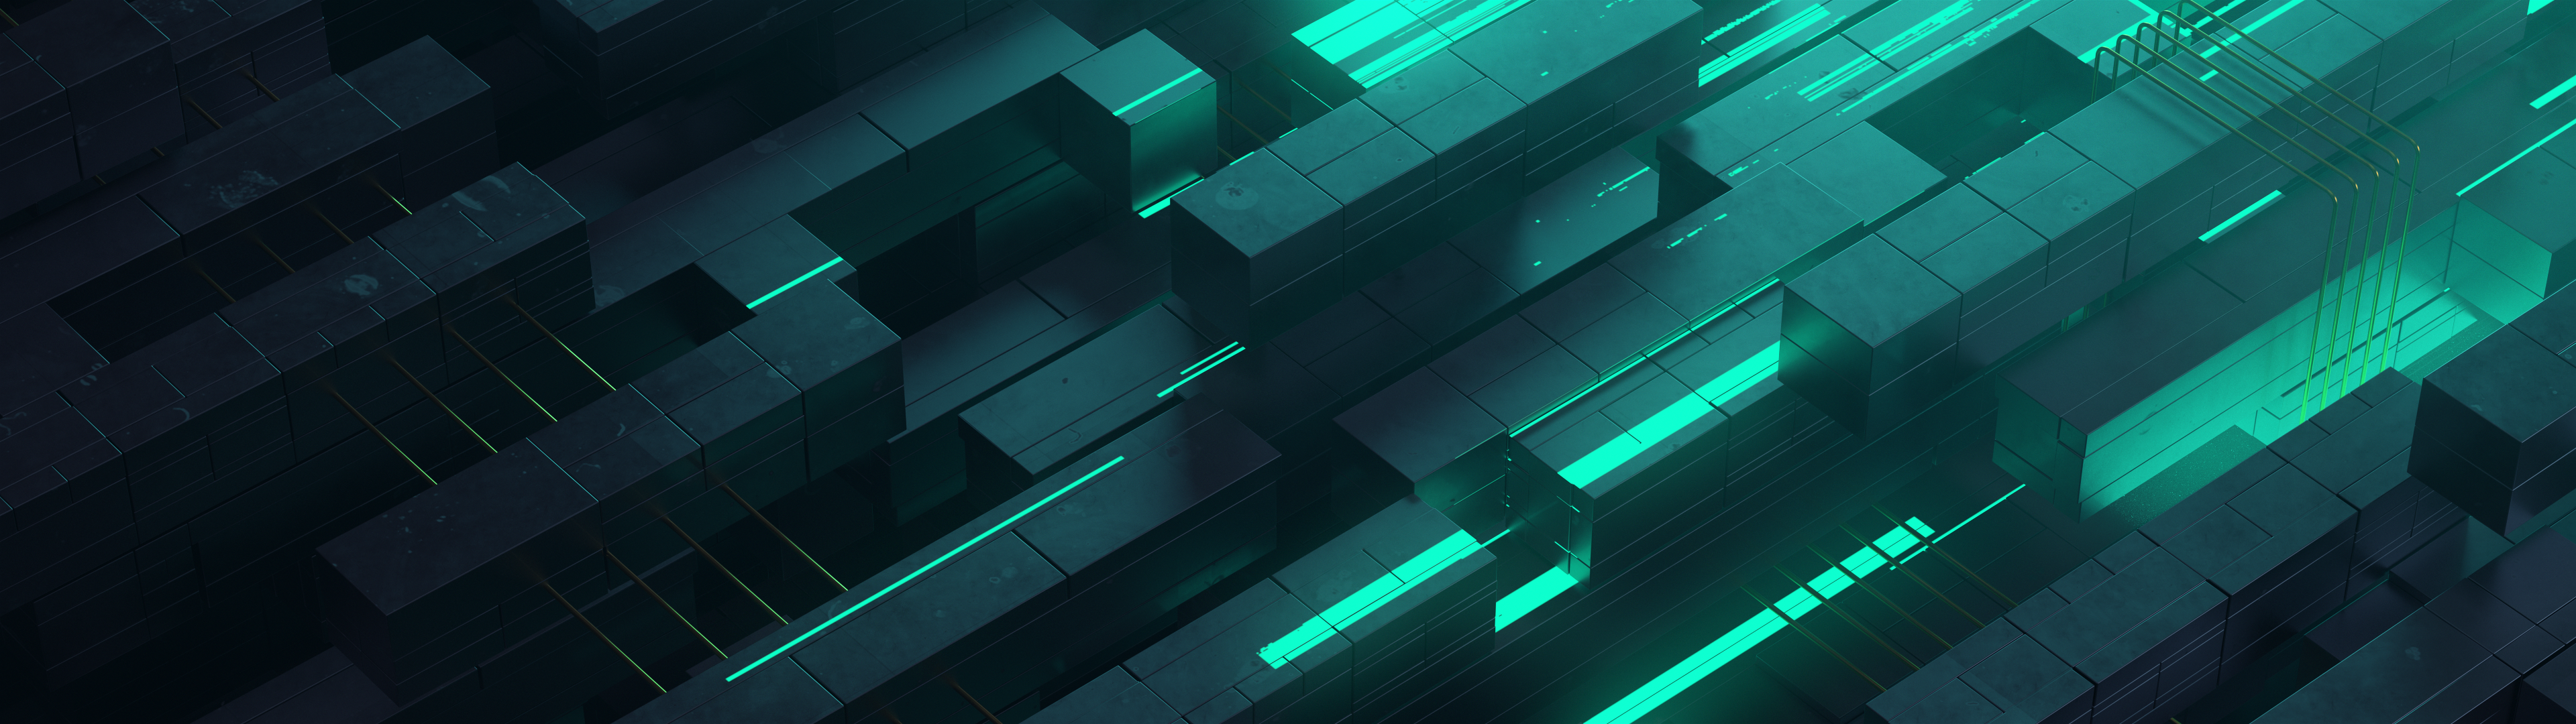 General 3840x1080 3D 3D Abstract abstract neon glow teal technology turquise